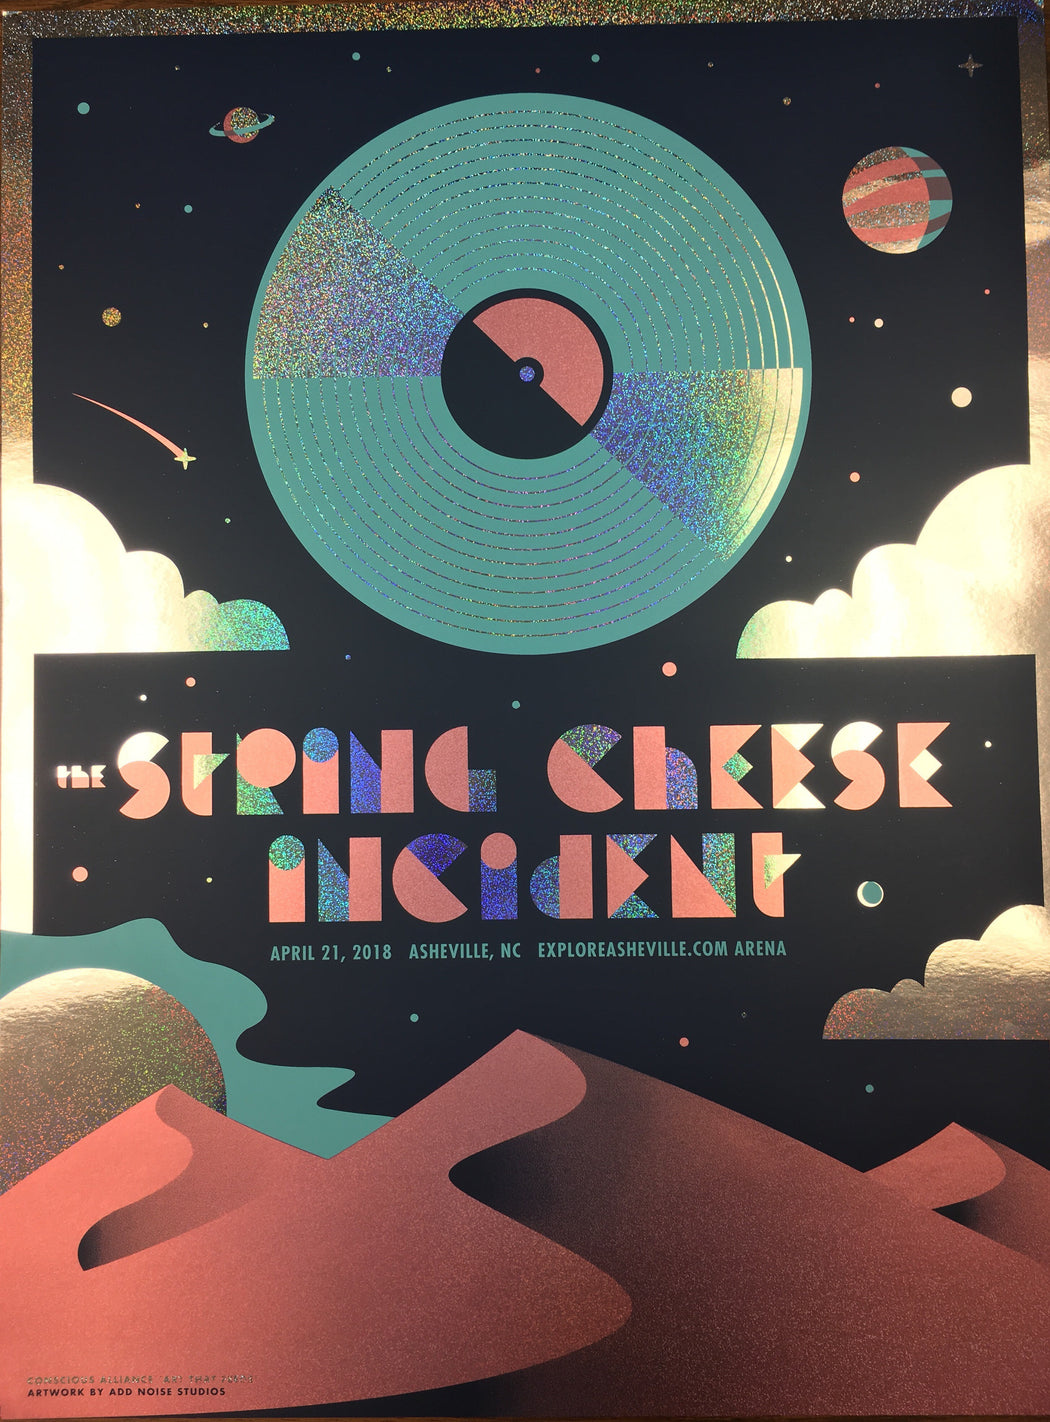 STRING CHEESE INCIDENT ASHEVILLE - 2018 (FOIL VARIANT)